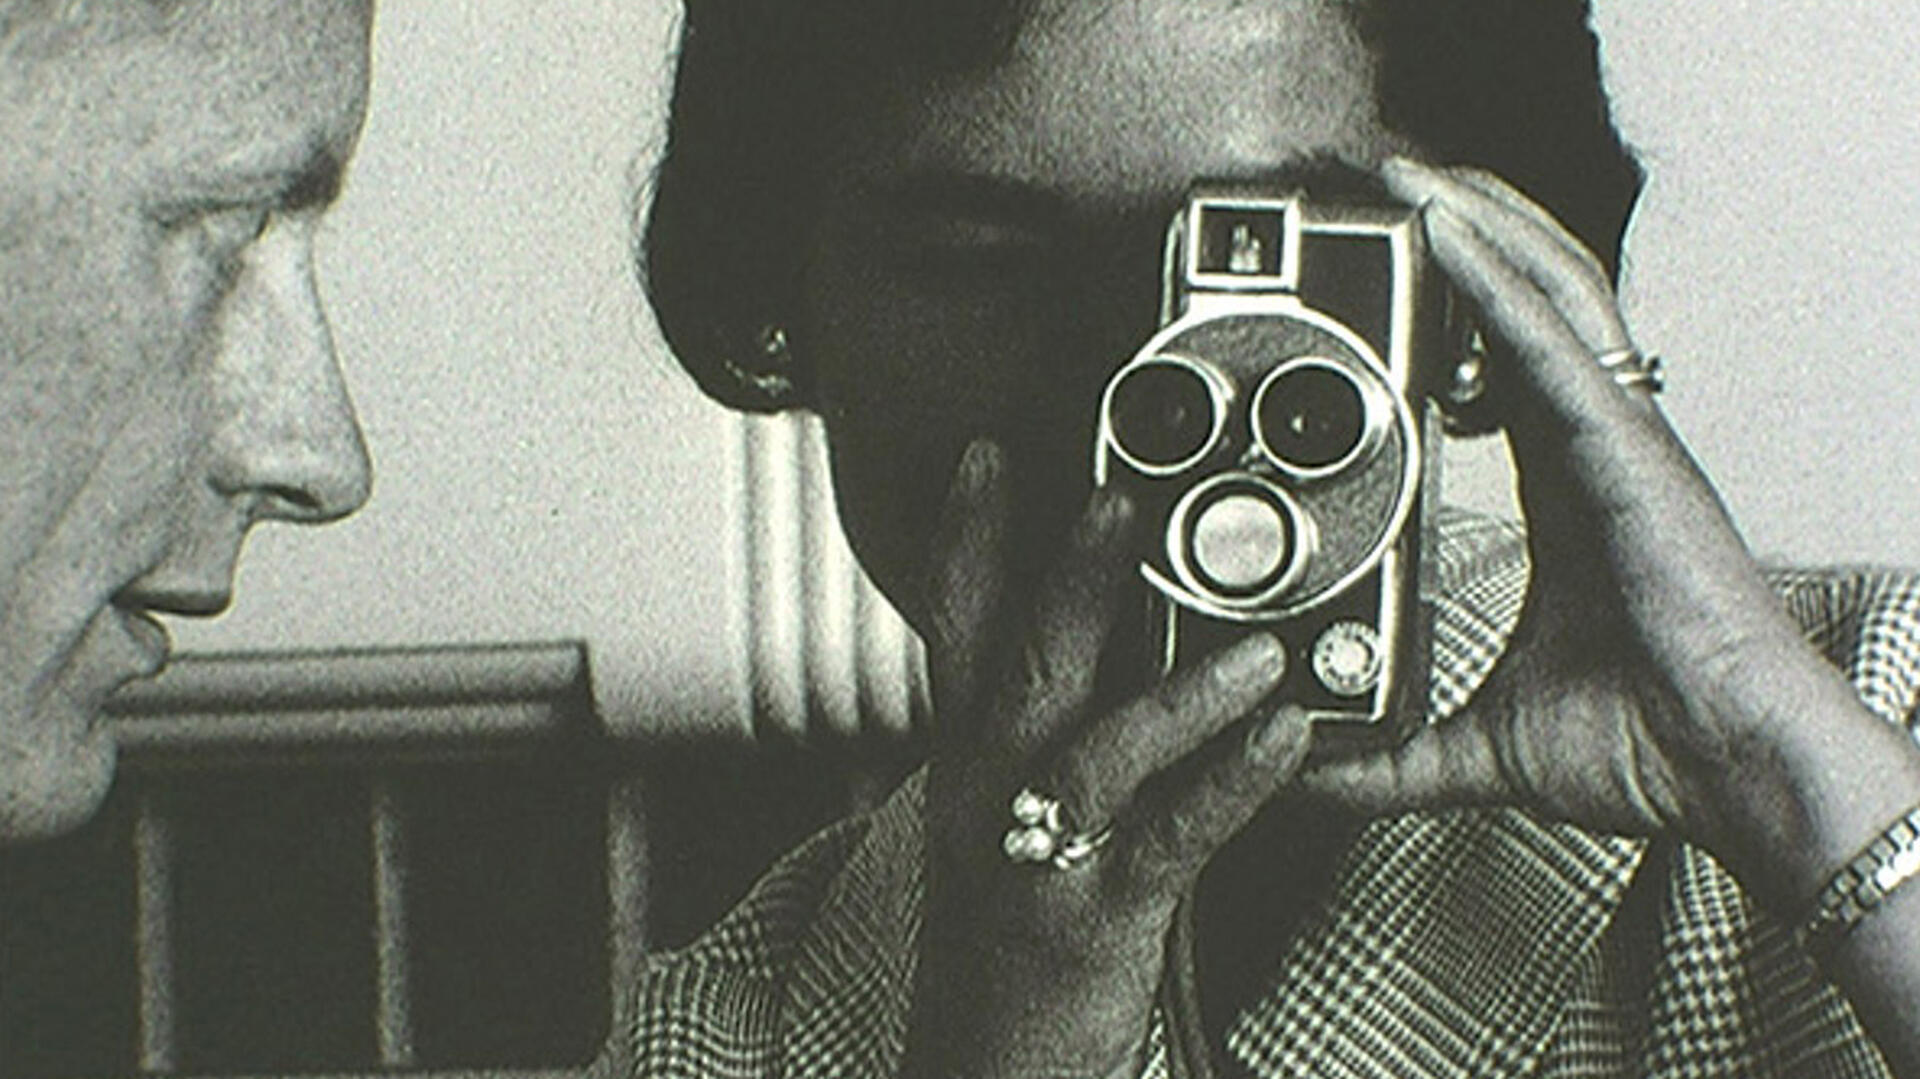 Vintage black-and-white close-up photograph of a woman looking through a film camera